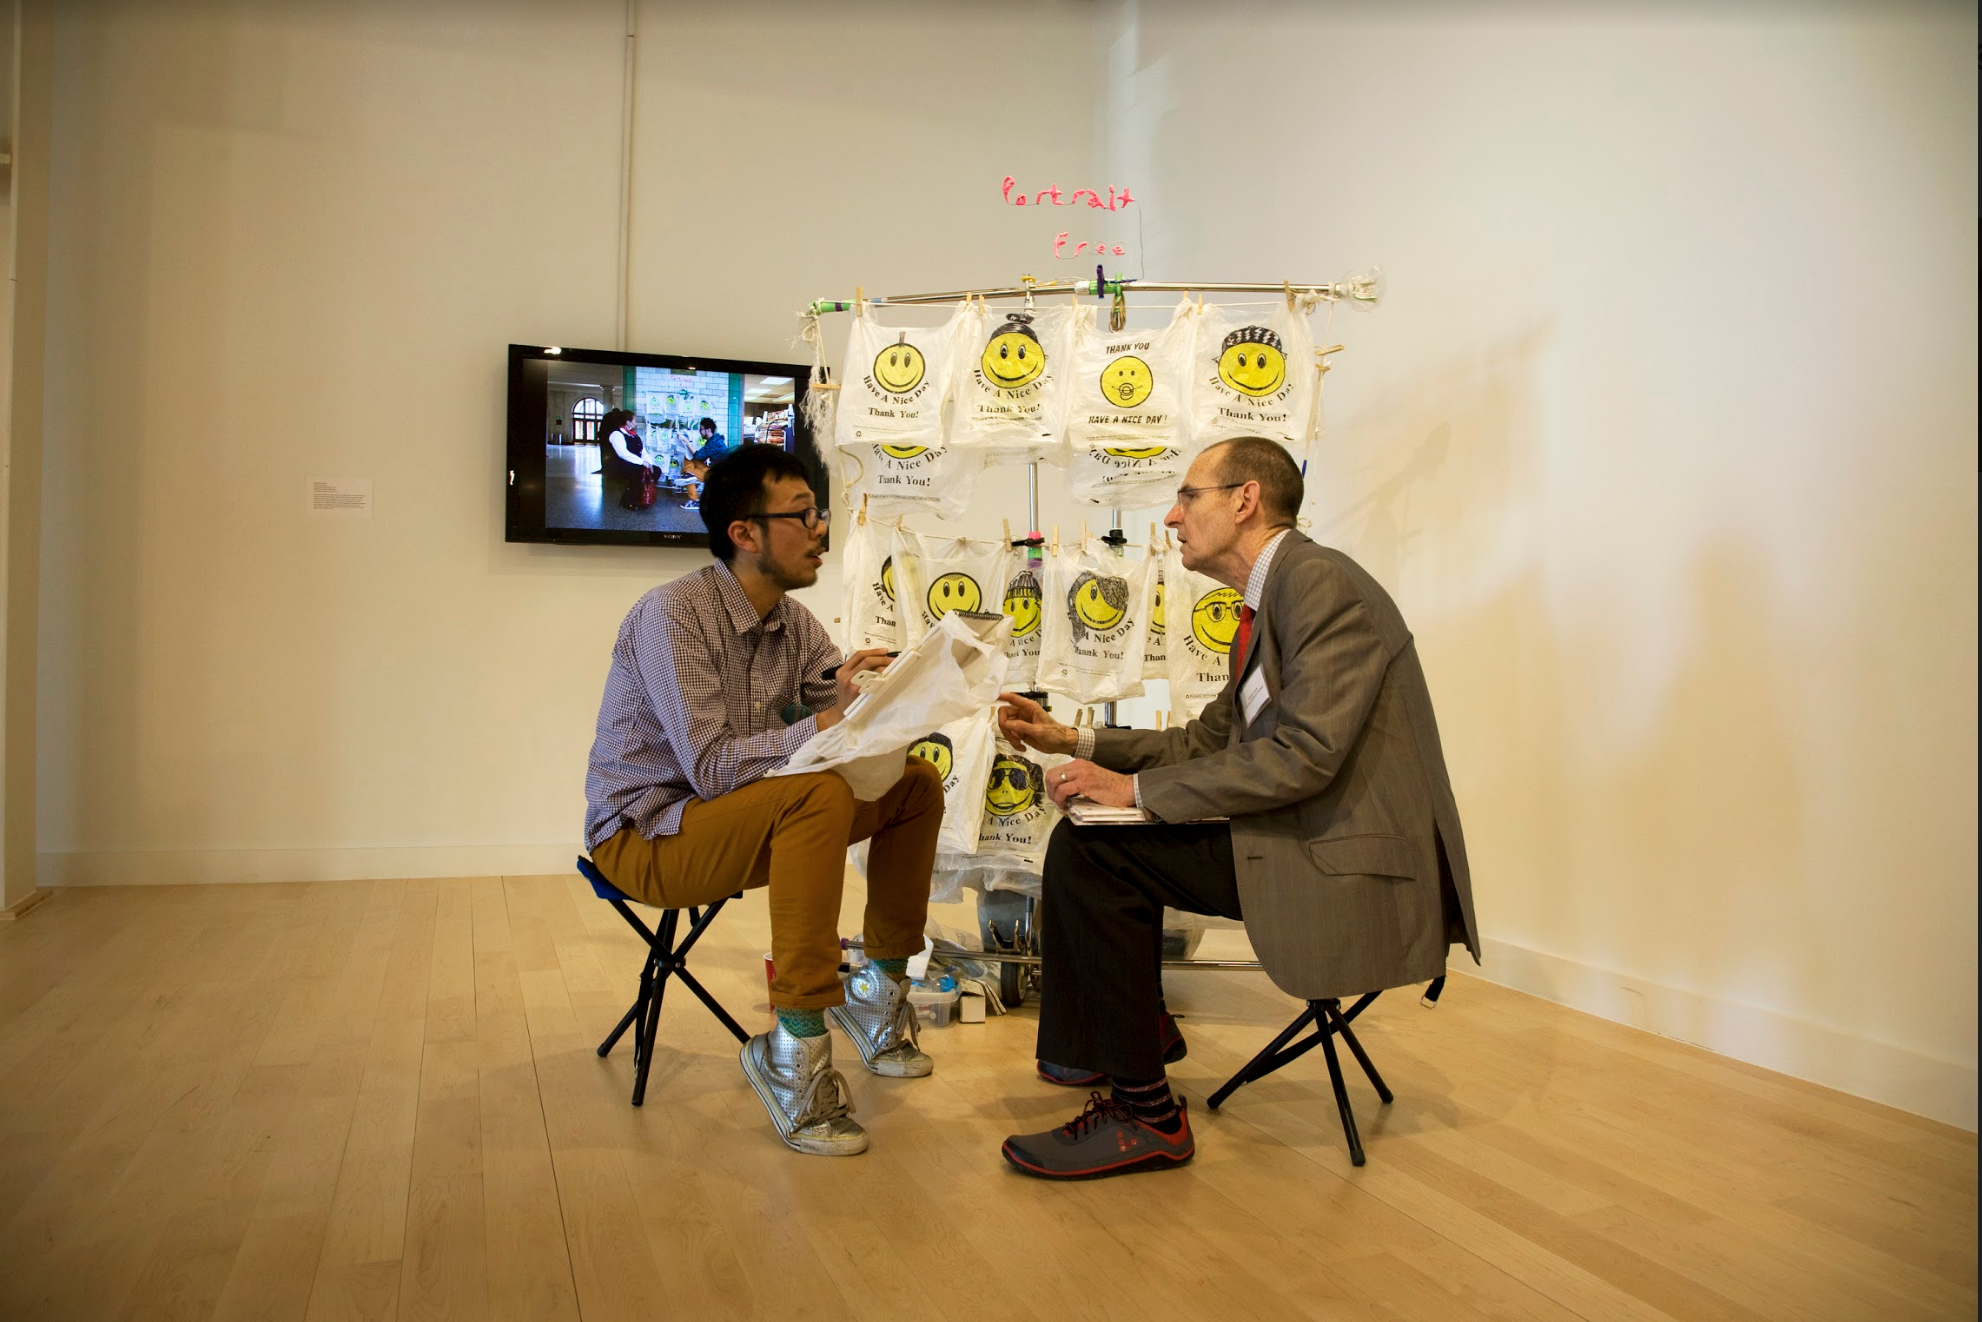 """Invited:Celebration Station "" George Ciscle with featured artist Nobutaka Aozaki, Curatorial Practice MFA Practicum at MICA's Riggs Gallery, 2012"